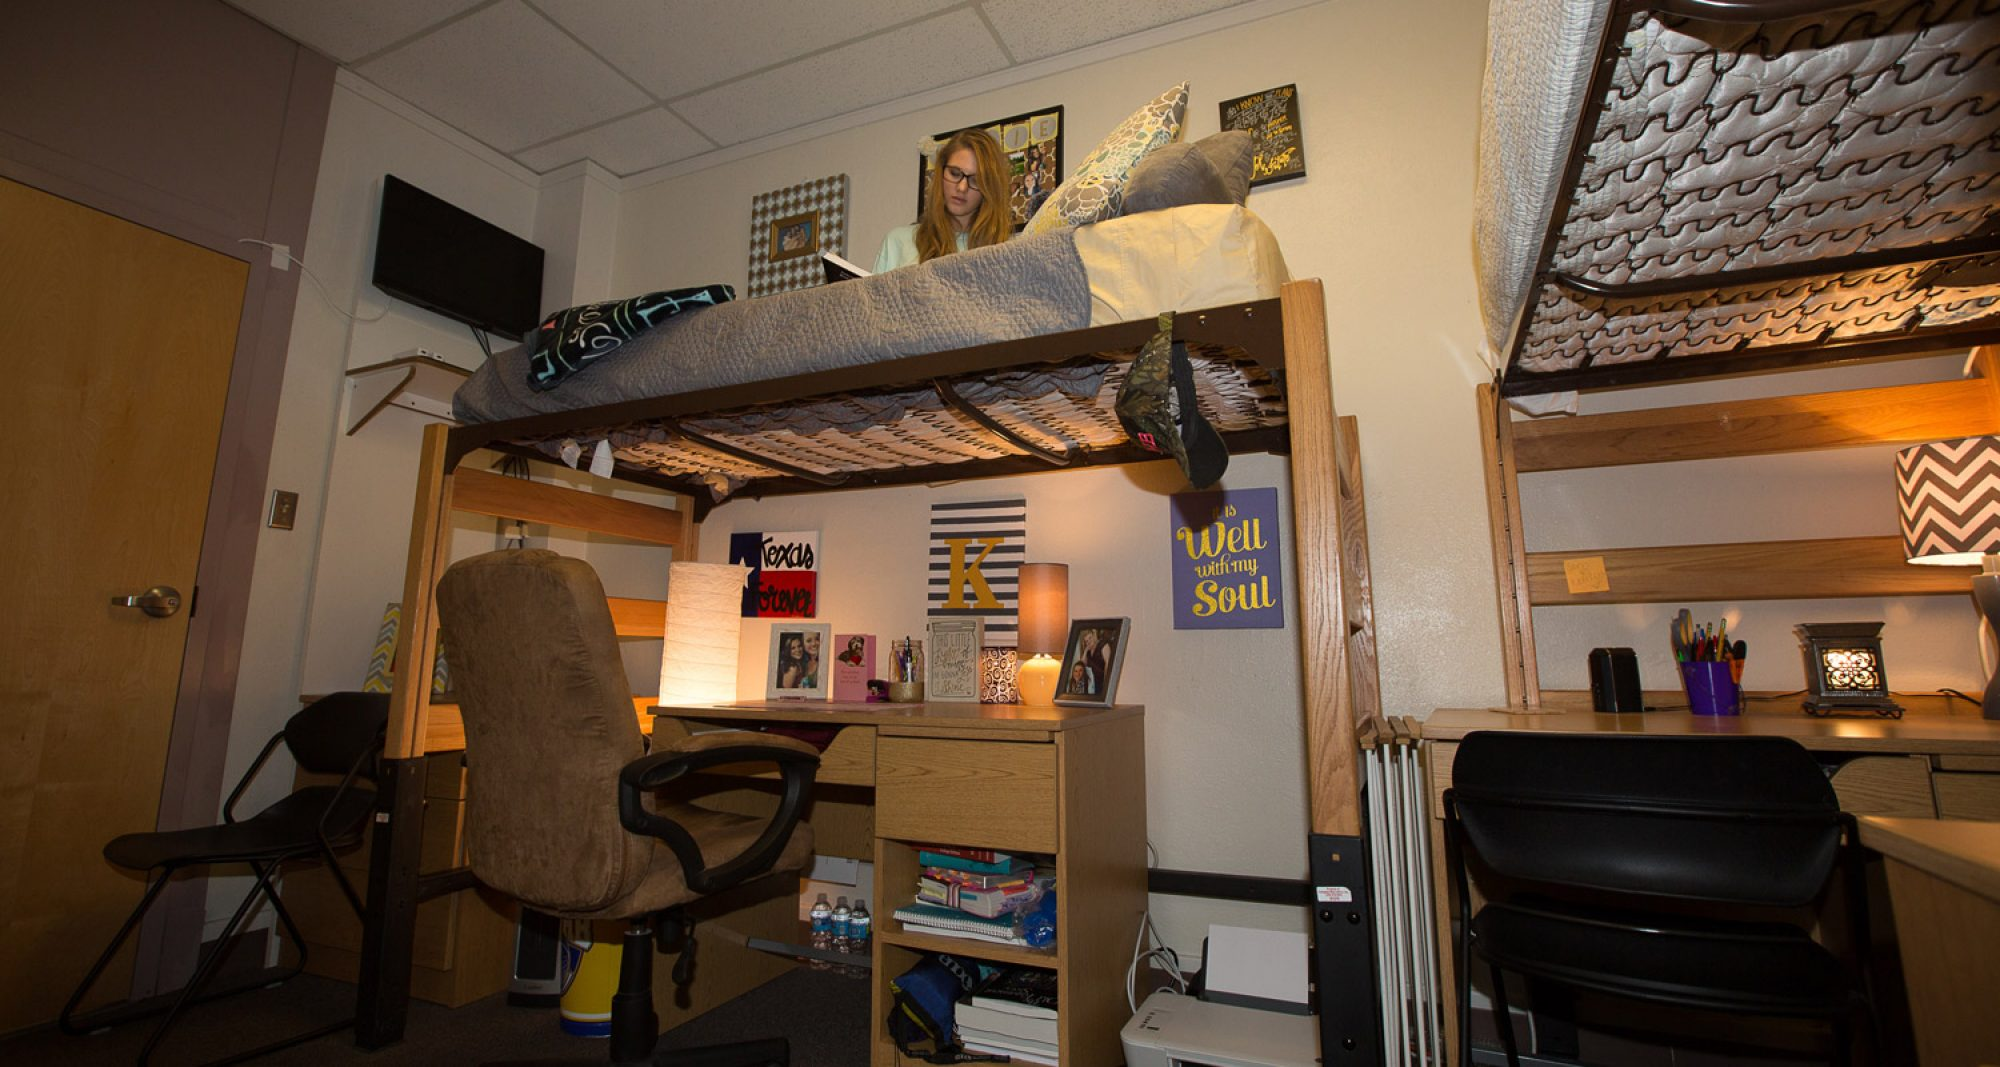 Bed Loft Bed Lofts Residence Life